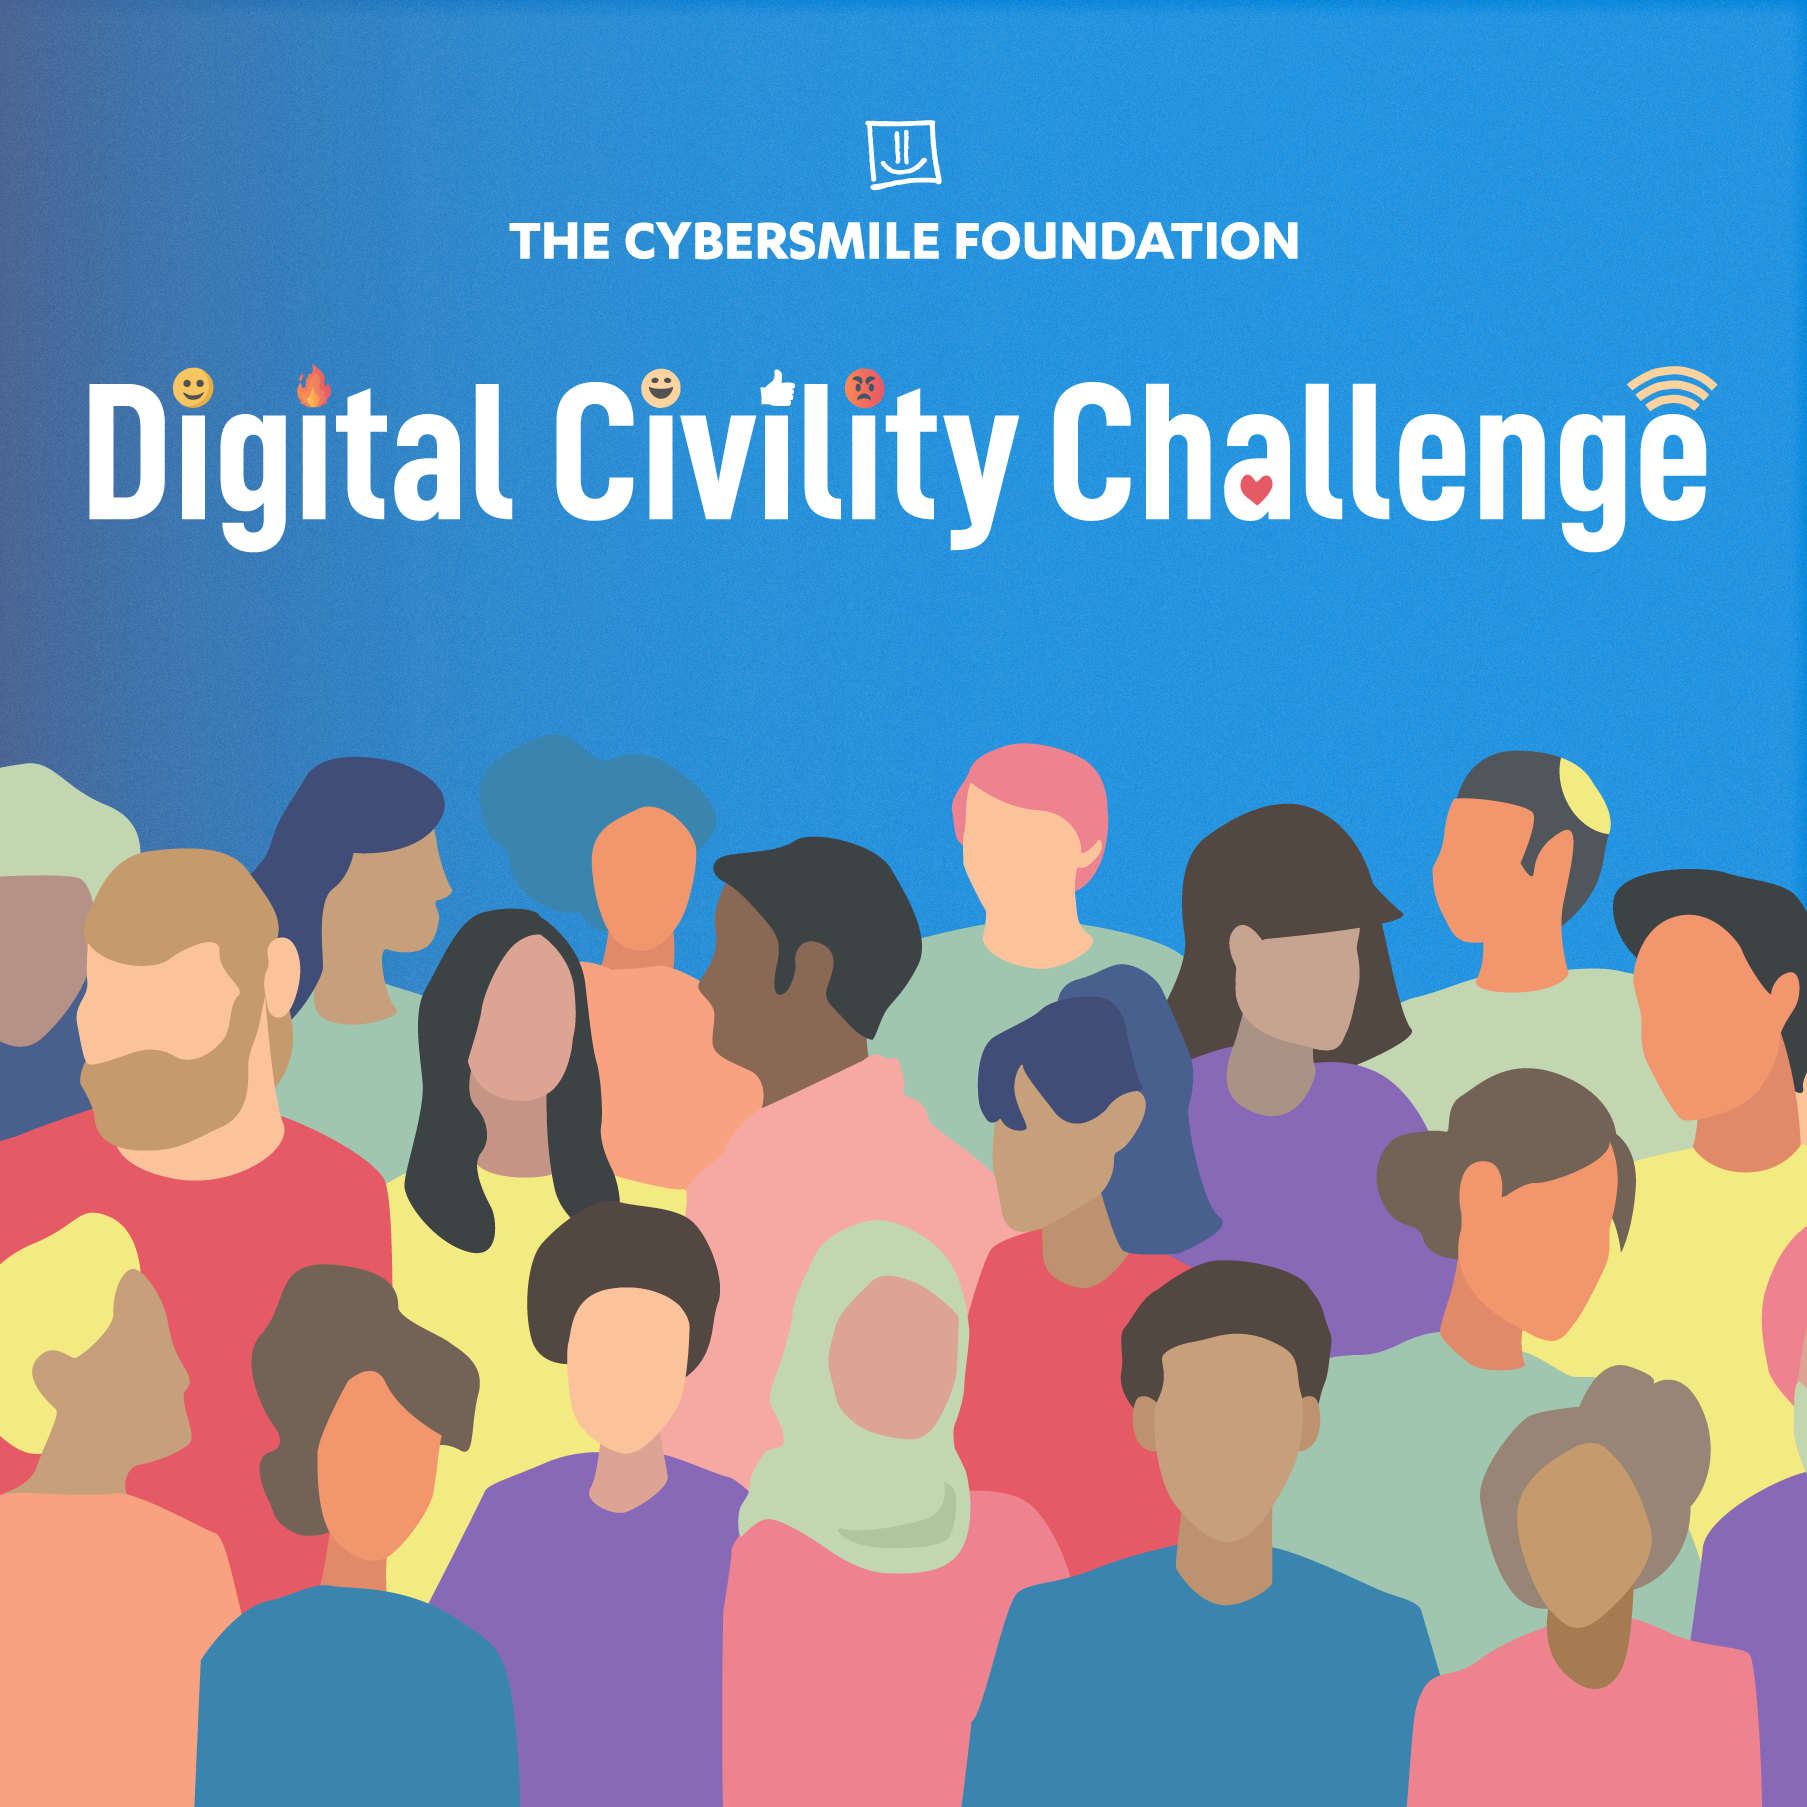 Digital Civility Challenge